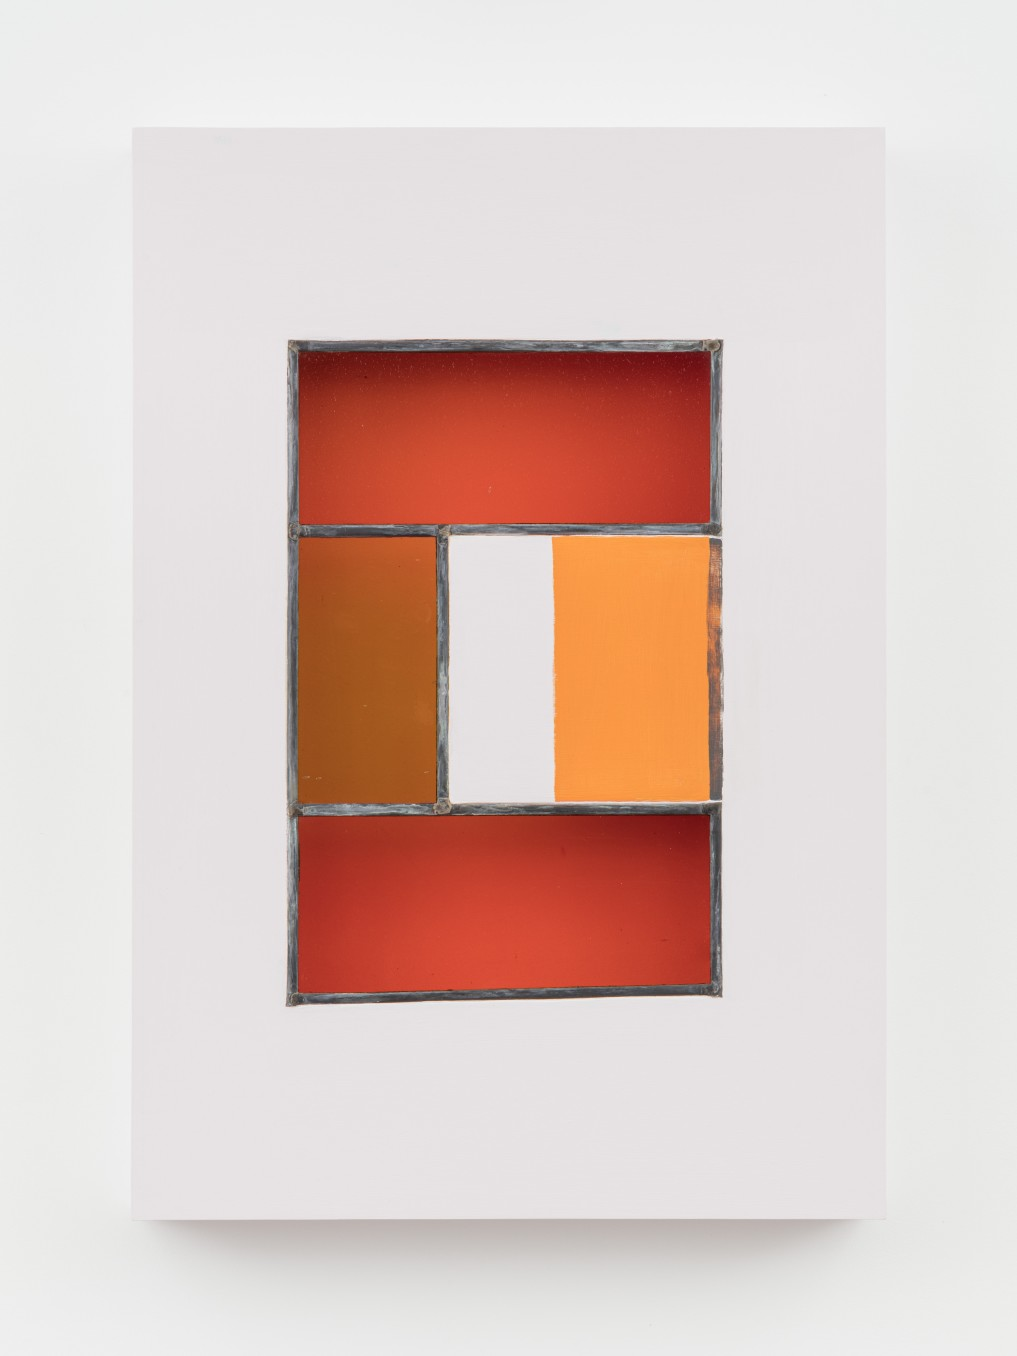 Jessica Warboys, HOUR II, 2019, Acrylic, antique glass, lead came, plywood, 87 x 59.7 x 8.9 cm, 34 1/4 x 23 1/2 x 3 1/2 in